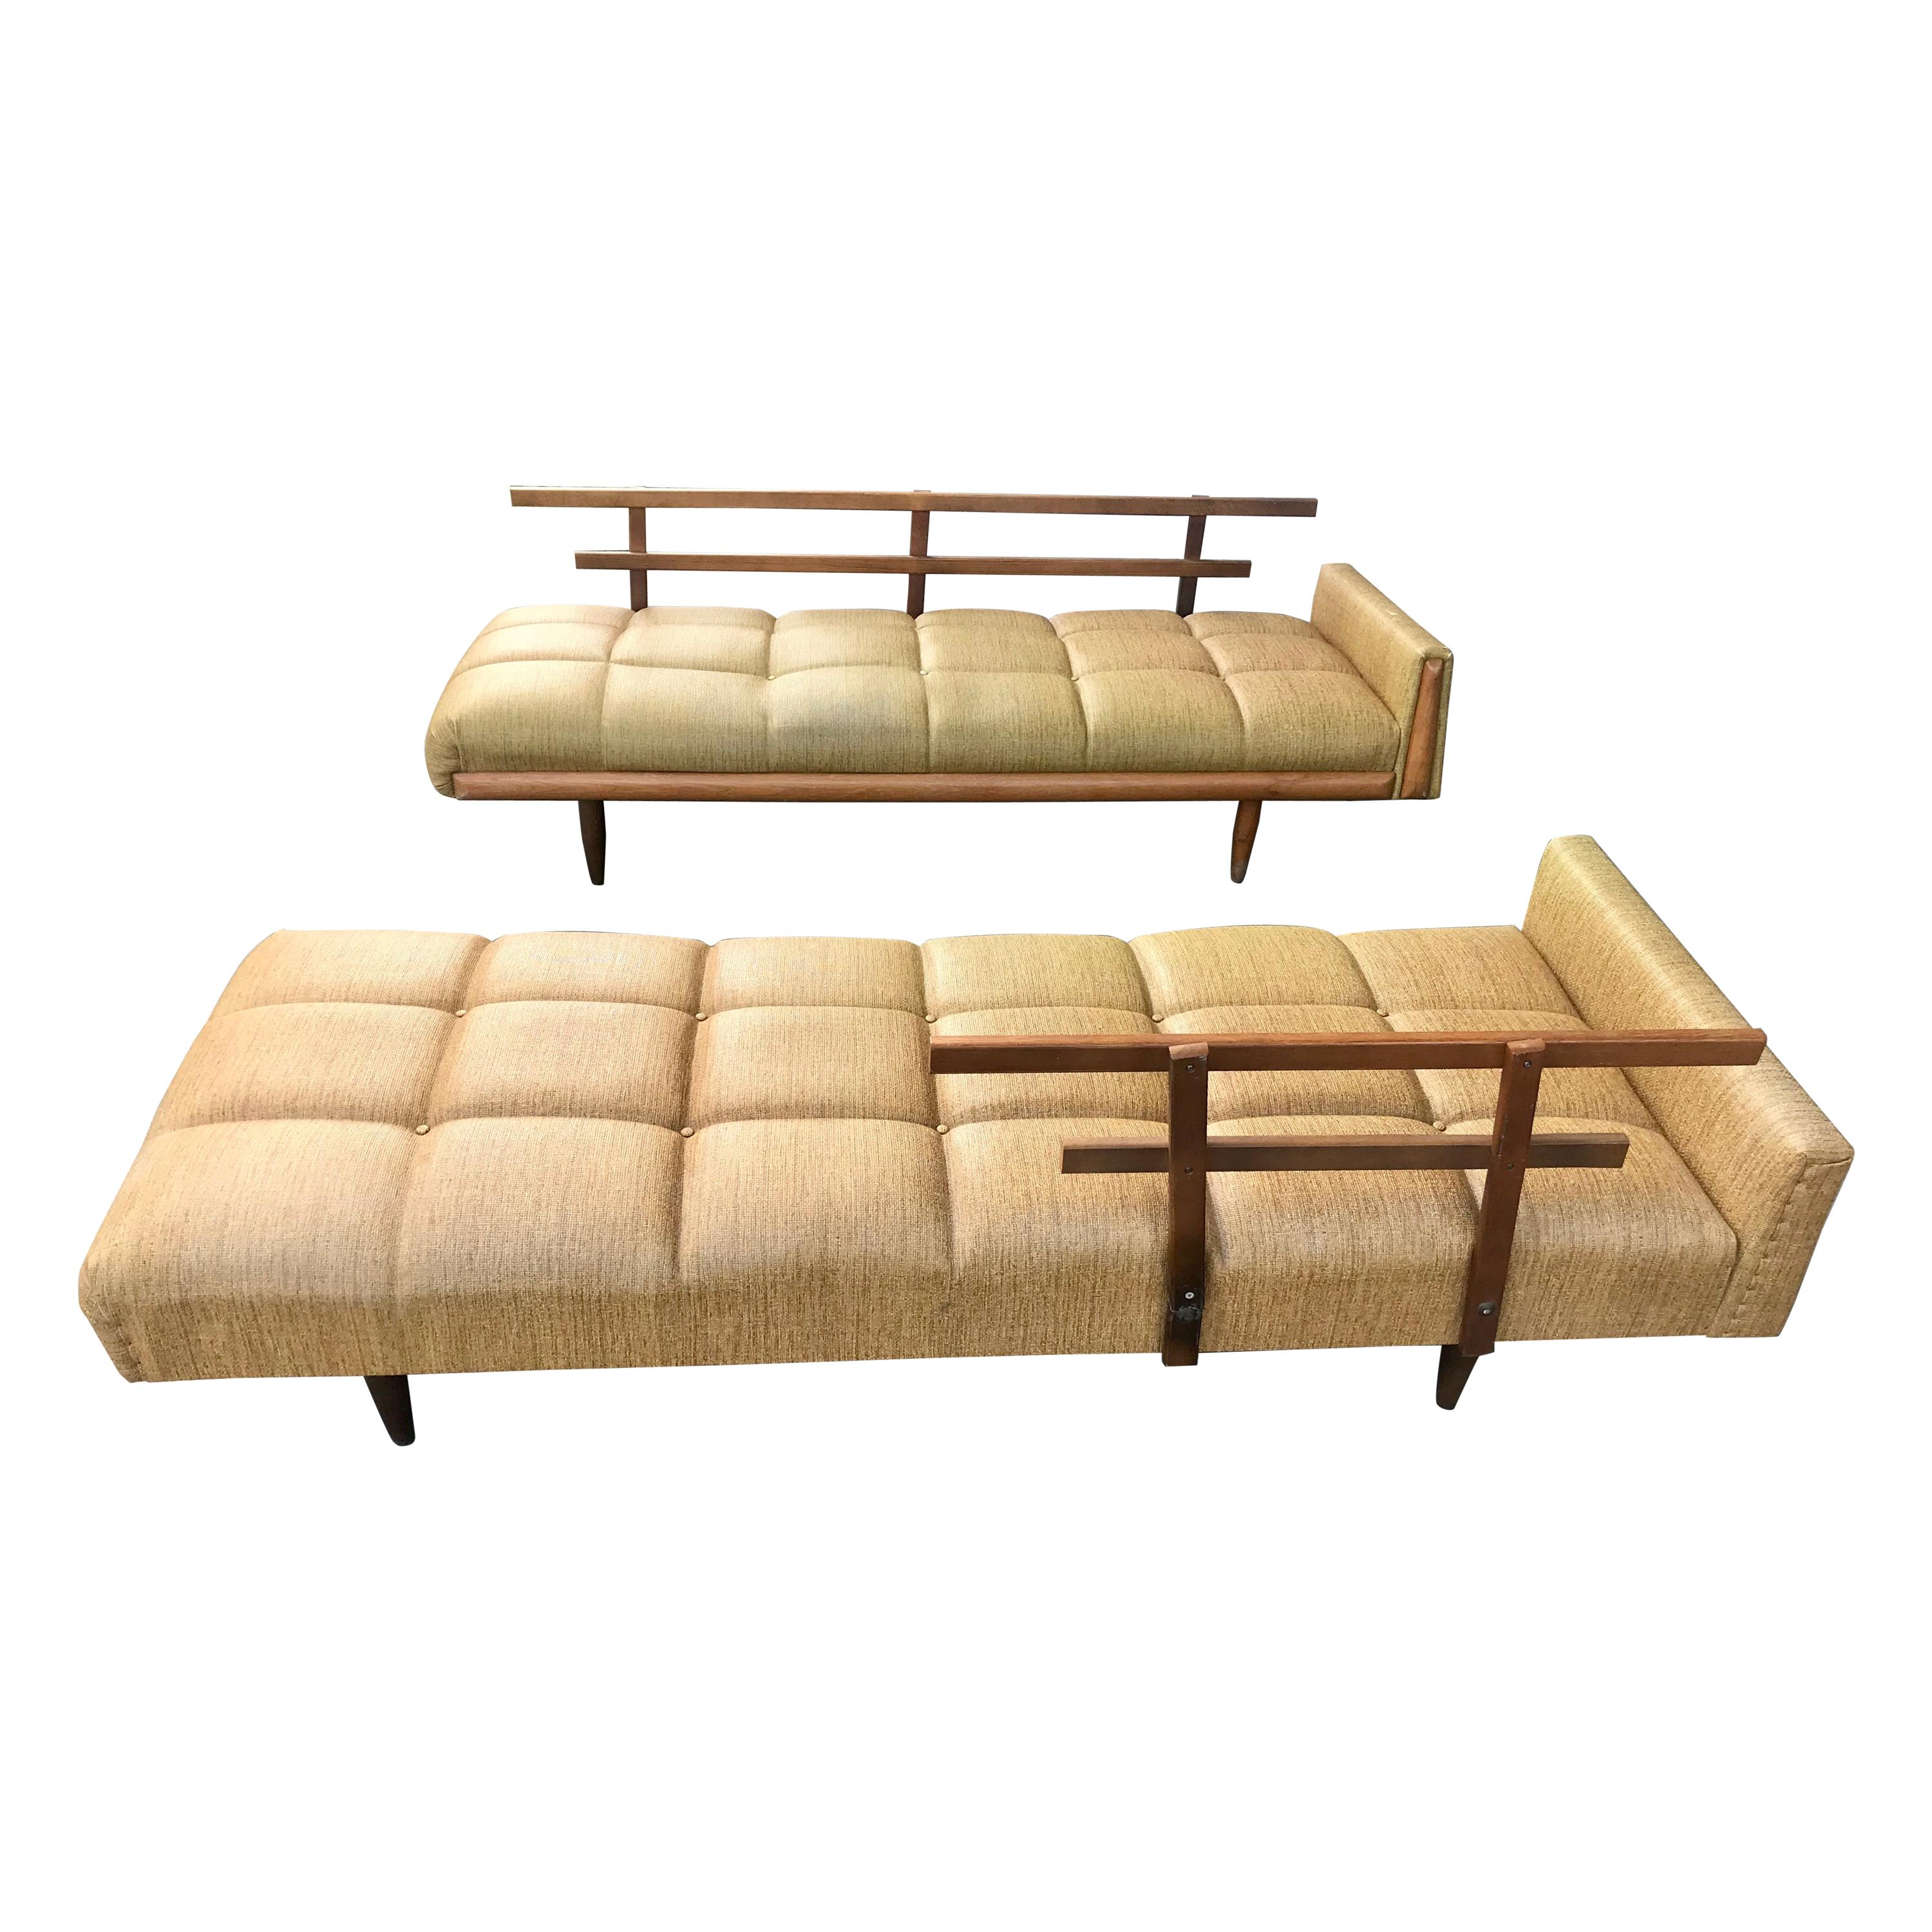 Modernist Button Tufted Daybed Attributed to Adrian Pearsall